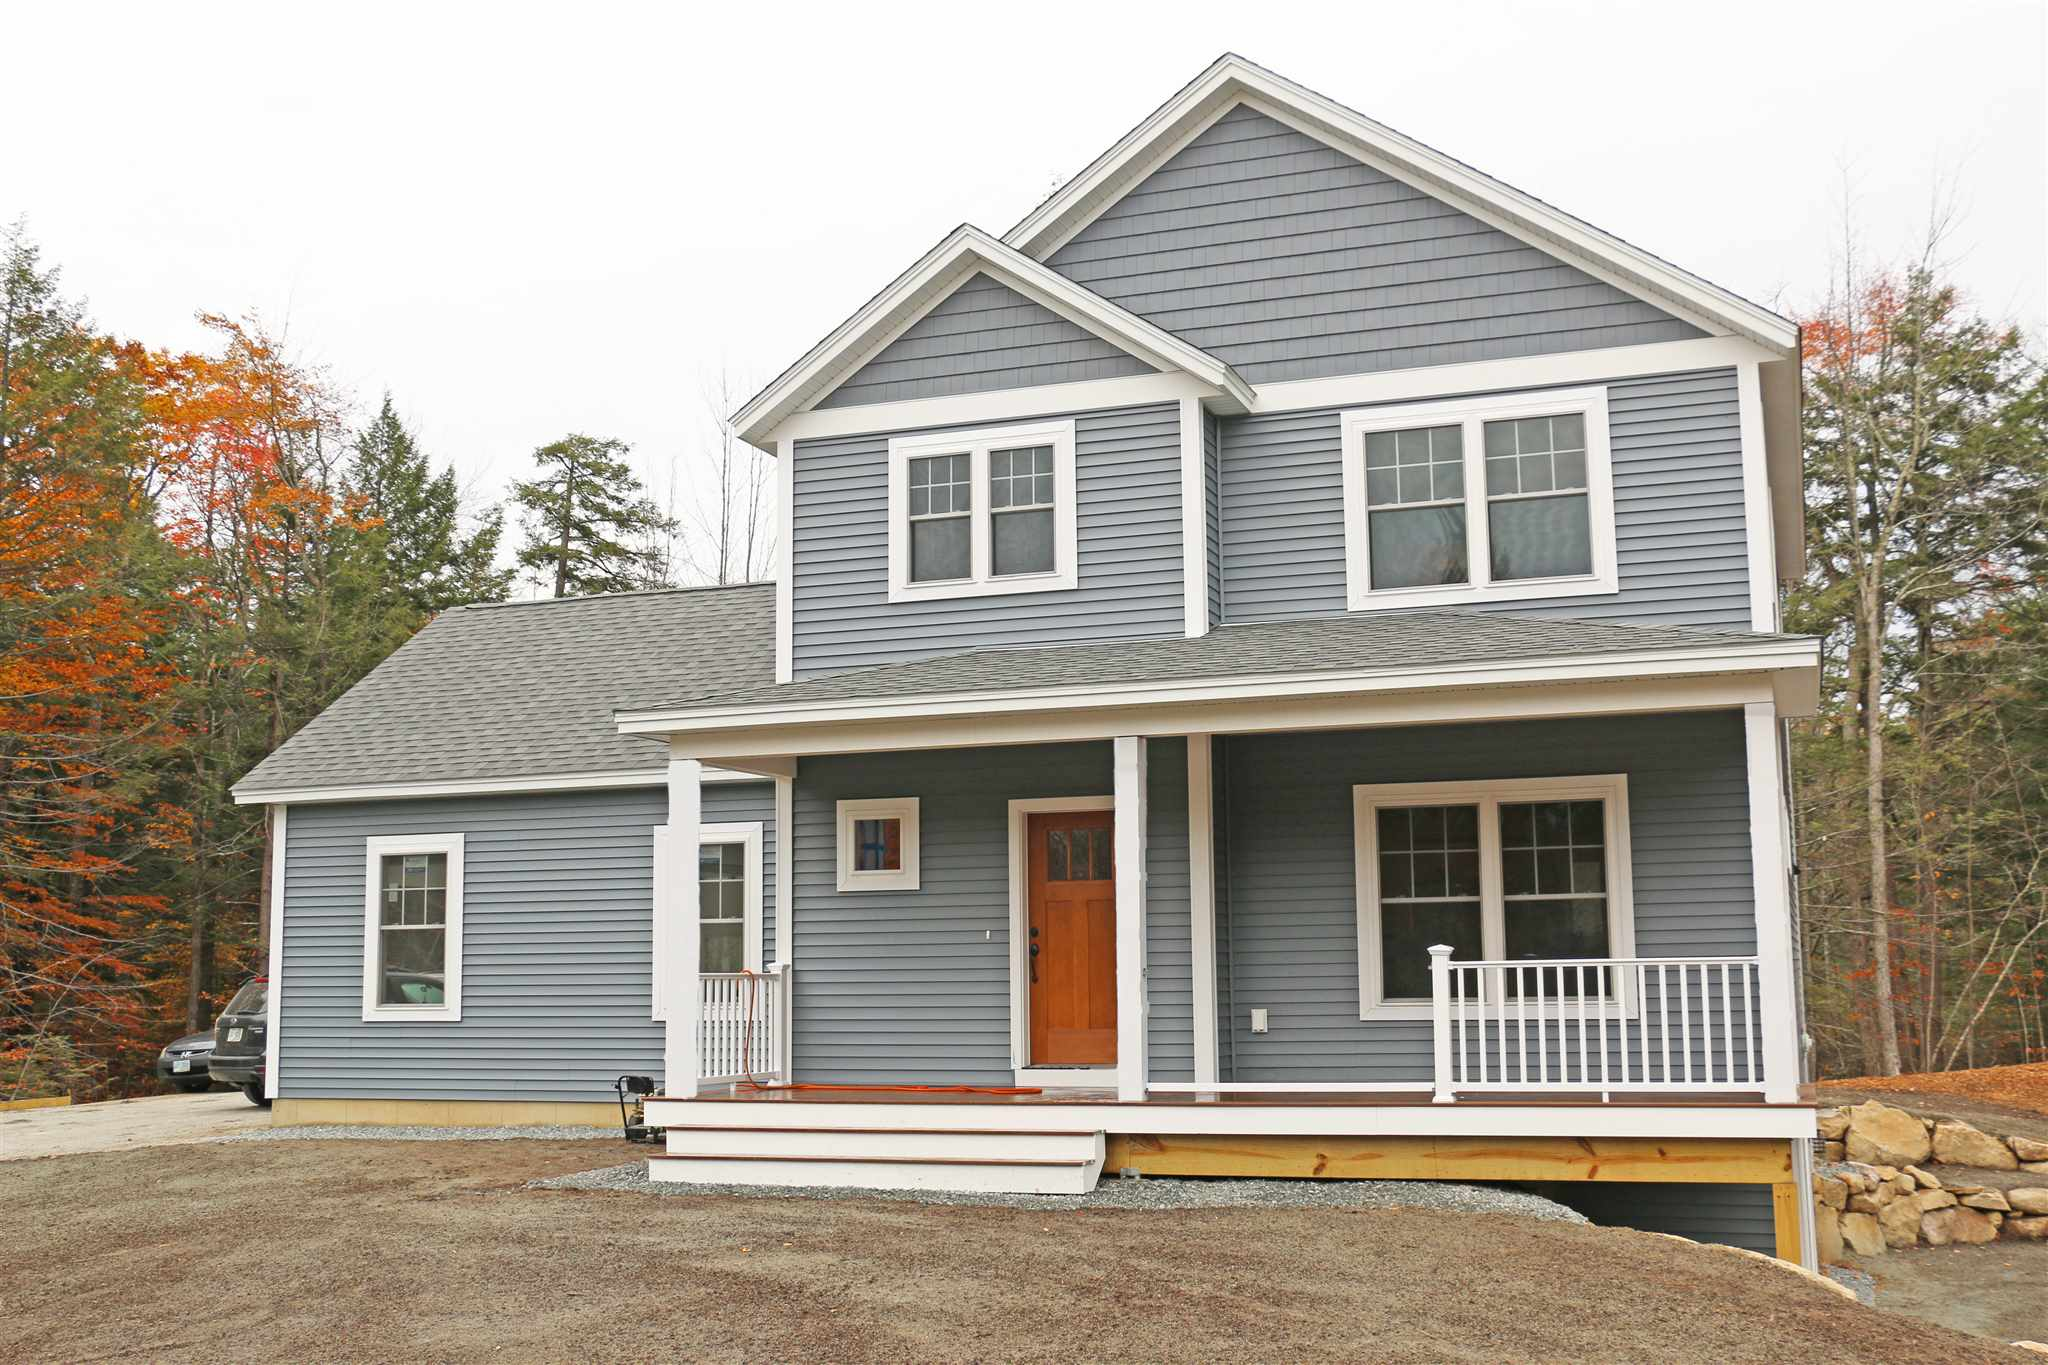 MLS 4789601: 3 Dutton Circle, Mont Vernon NH